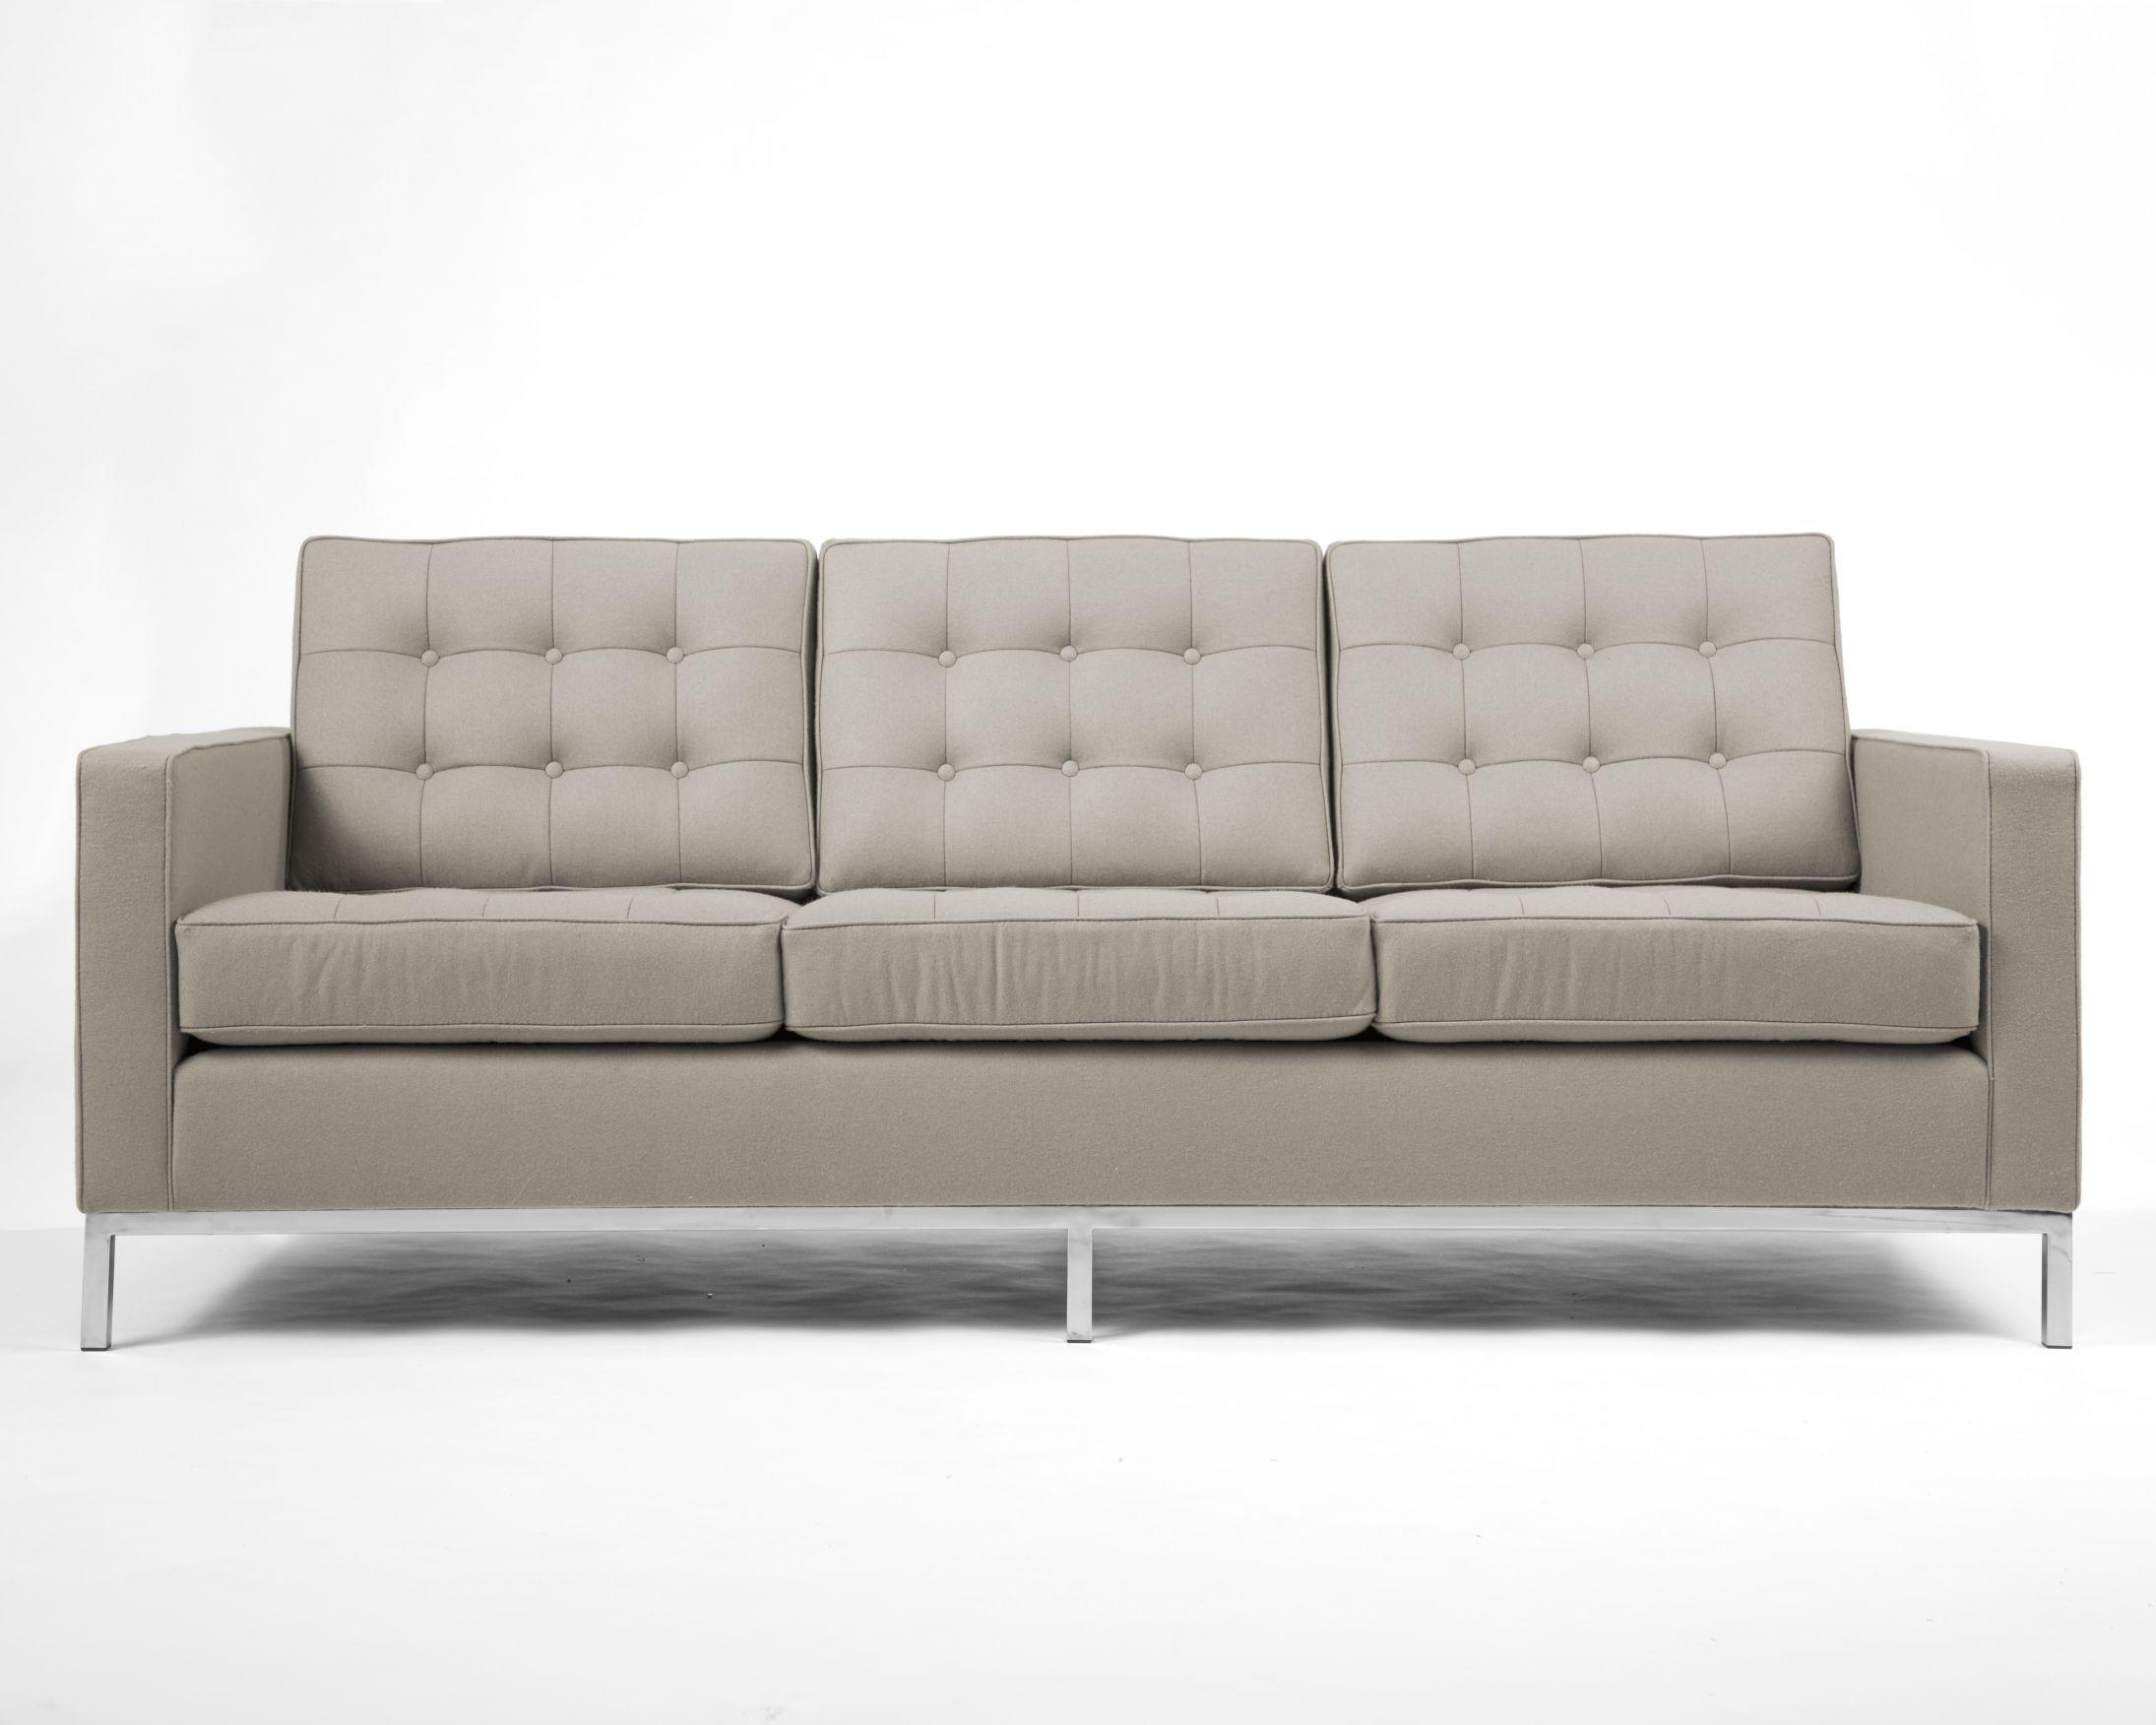 Florence Sofa | Reproduction | Mid Century Modern For Florence Sofas And Loveseats (View 7 of 20)